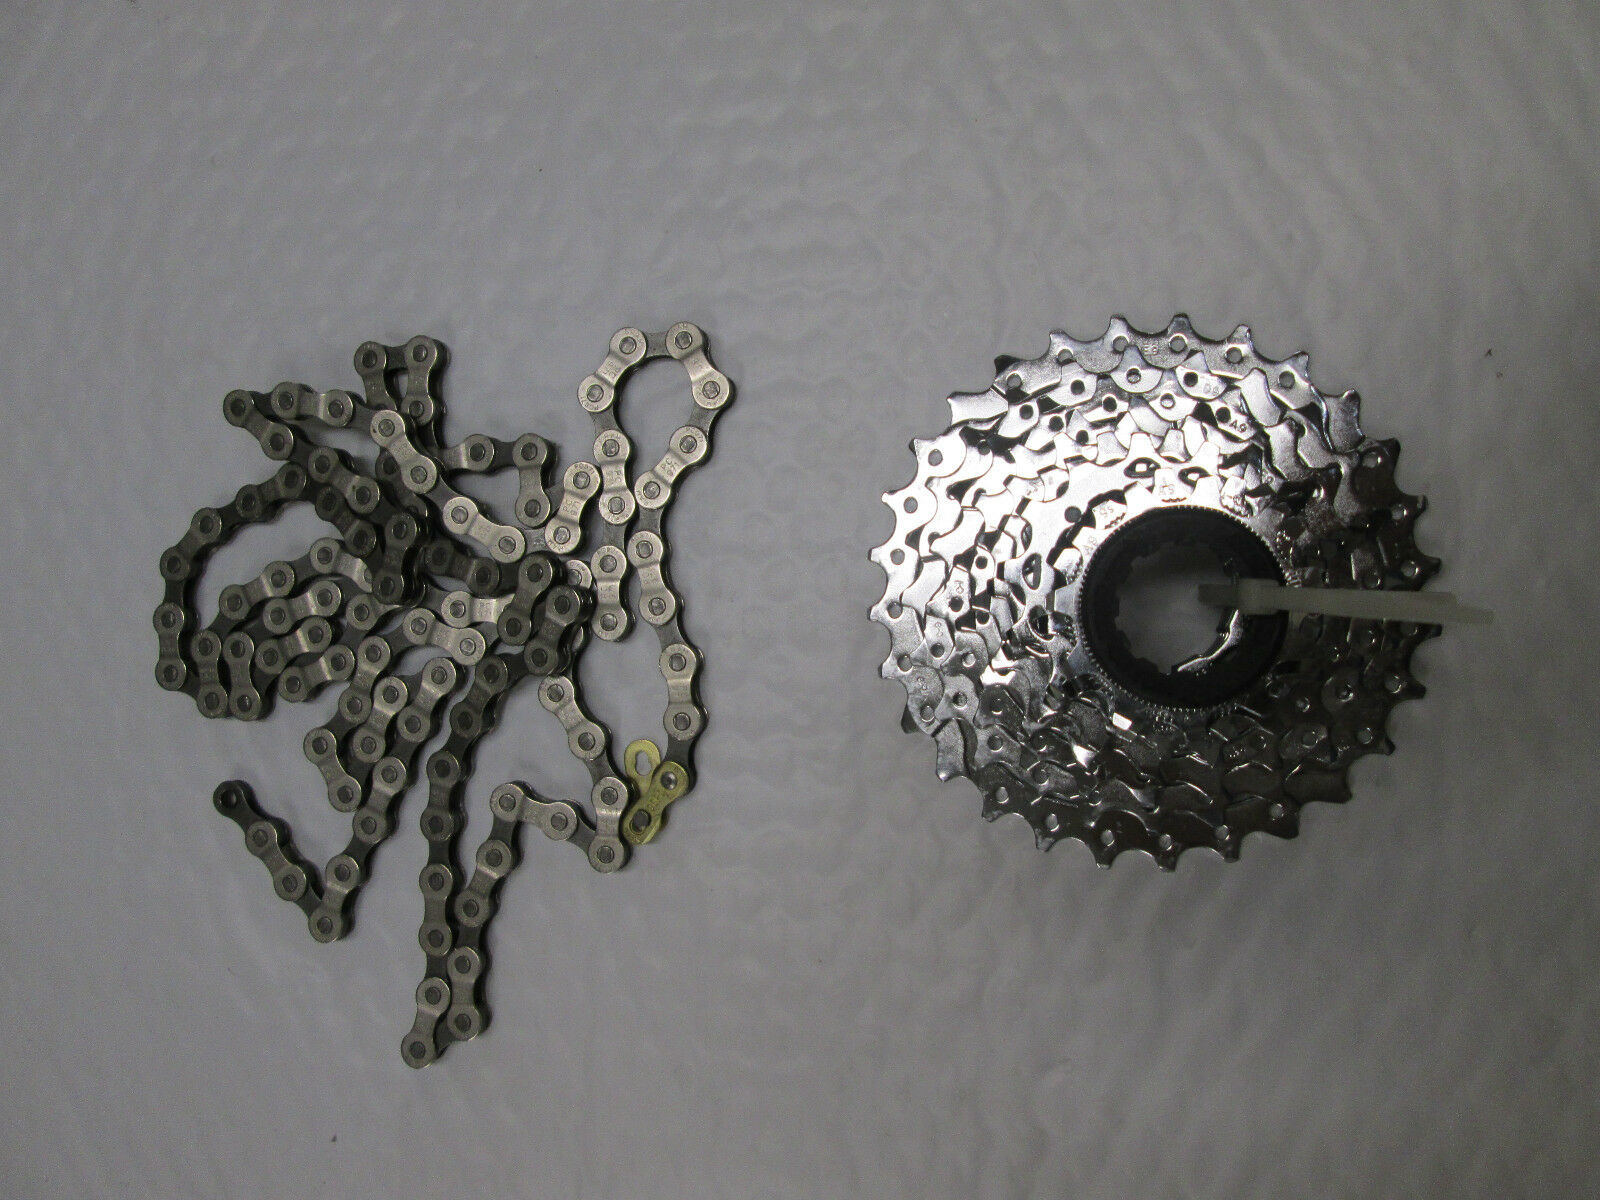 SRAM 11-28t 9 Speed Cassette and SRAM PC-971 Chain Downhill Mountain